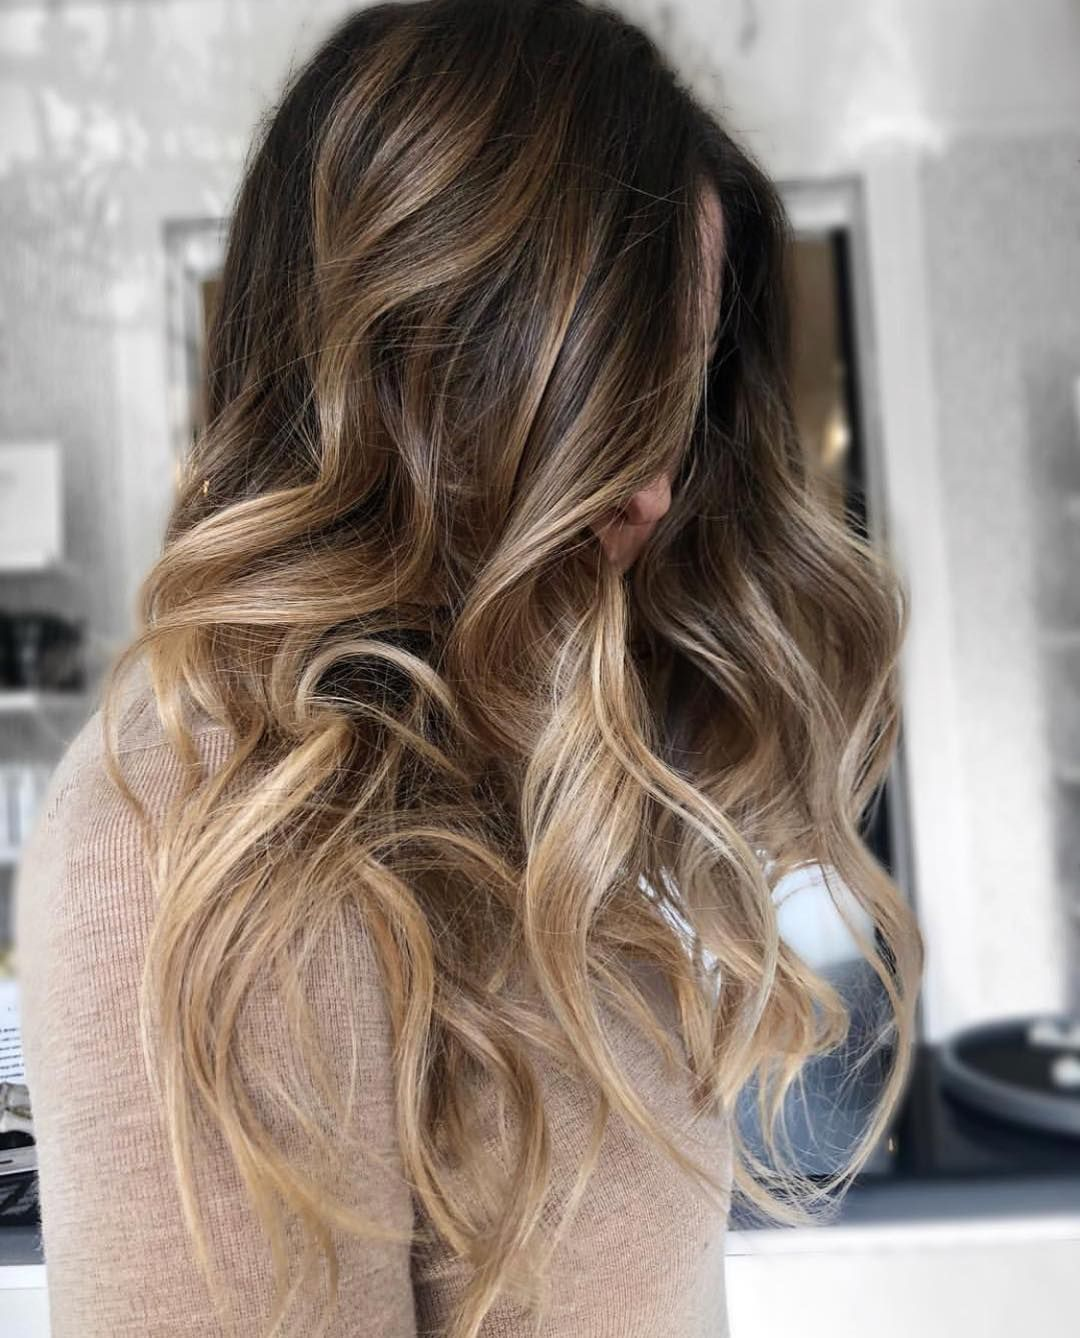 "✨BALAYAGE & BEAUTIFUL HAIR on Instagram: ""This speaks to me  By Hair By Britny <a class=""pintag"" href=""/explore/bestofbalayage/"" title=""#bestofbalayage explore Pinterest"">#bestofbalayage</a> <a class=""pintag"" href=""/explore/showmethebalayage/"" title=""#showmethebalayage explore Pinterest"">#showmethebalayage</a>""<p><a href=""http://www.homeinteriordesign.org/2018/02/short-guide-to-interior-decoration.html"">Short guide to interior decoration</a></p>"